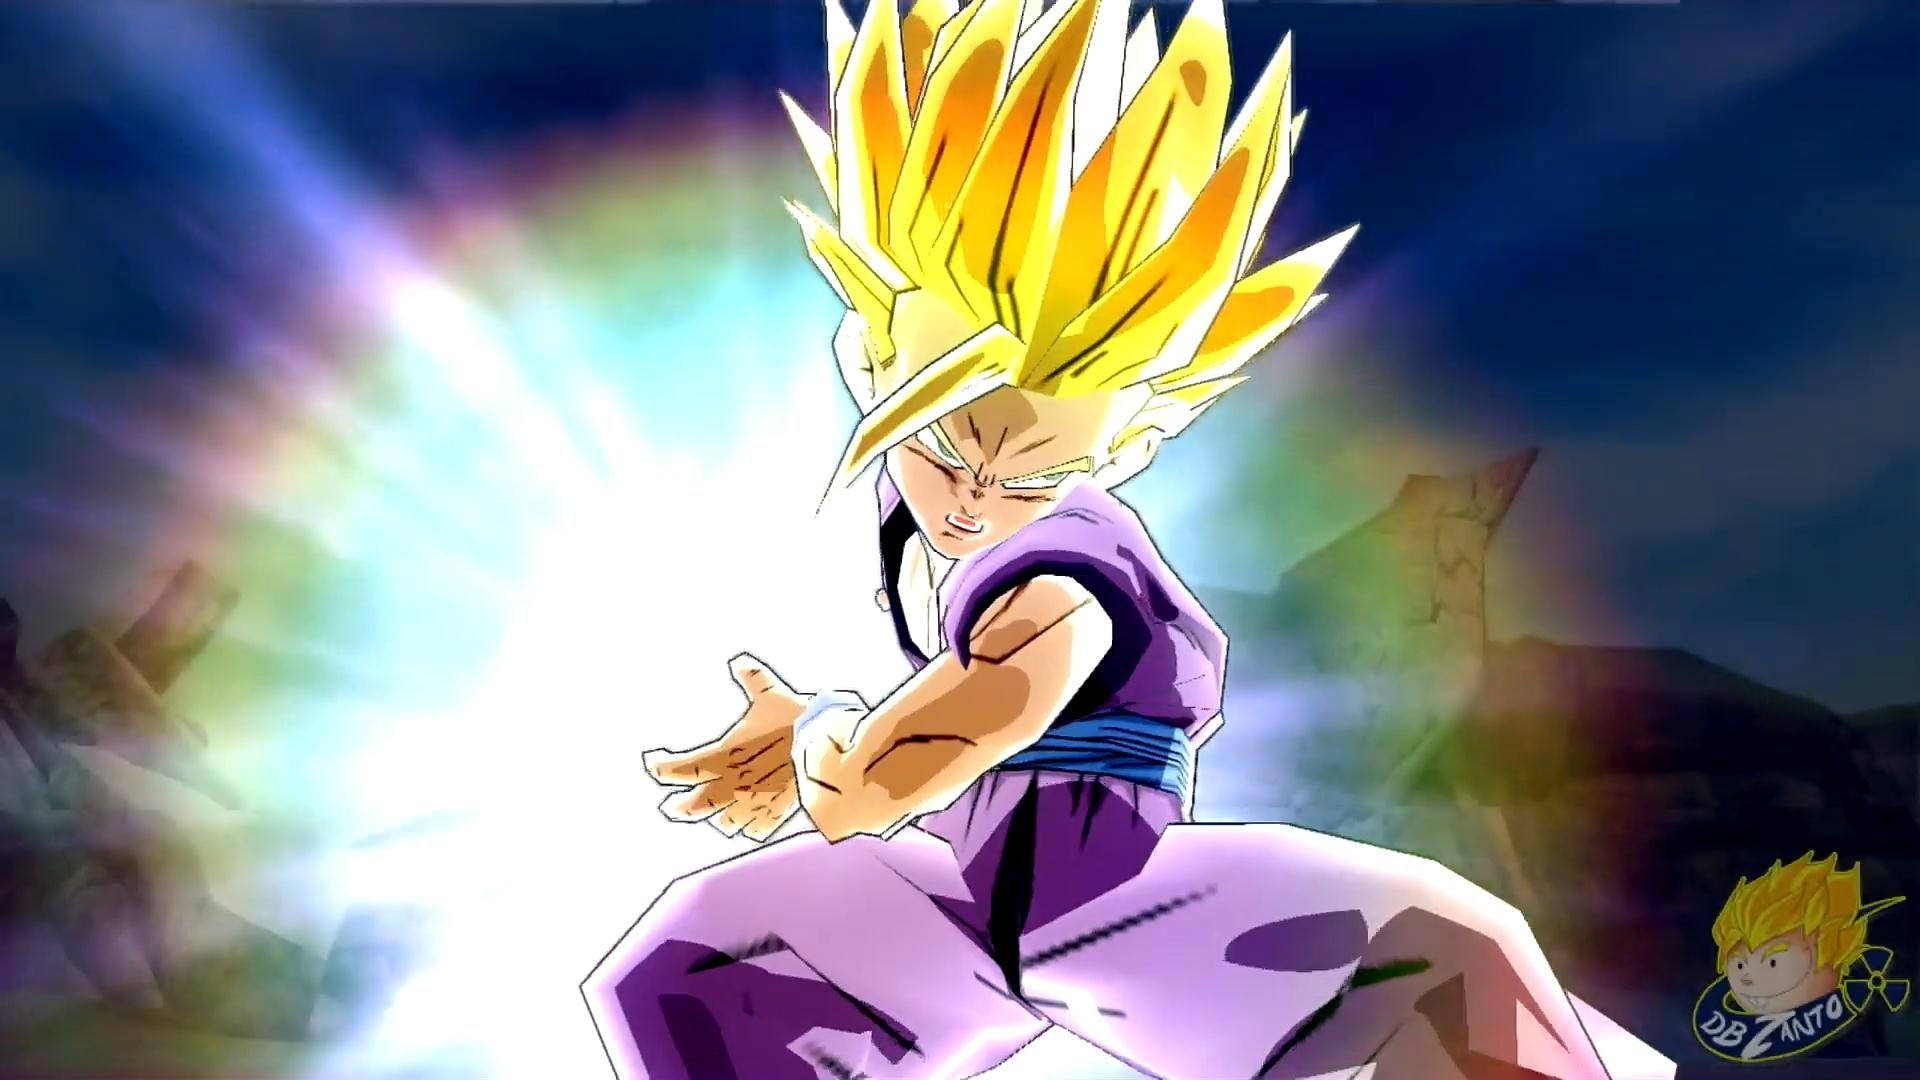 Res: 1920x1080, HD Teen Gohan Wallpapers and Photos,  » By Freda Perl